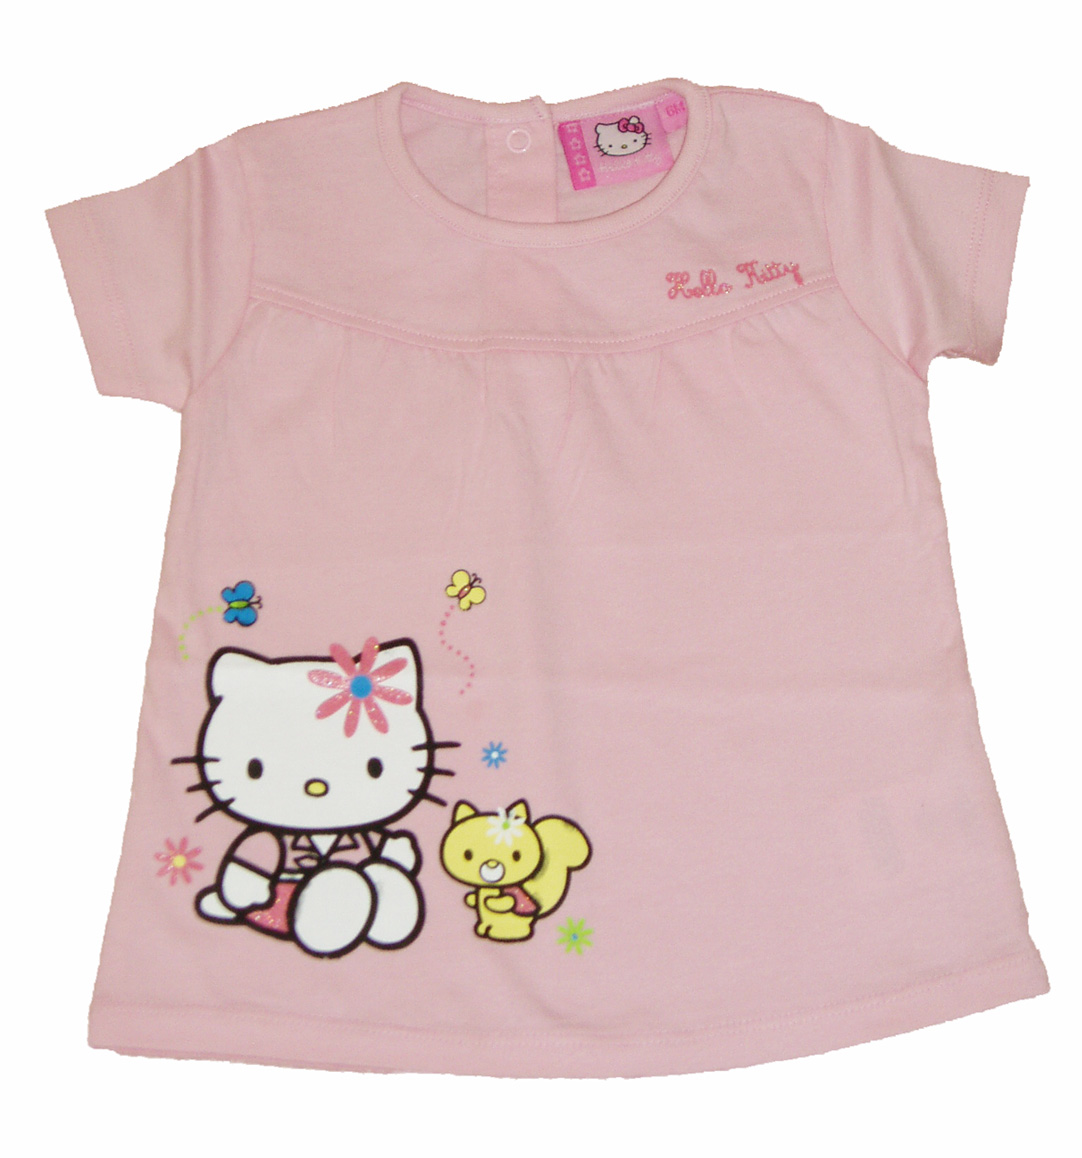 Pink Hello Kitty T-shirt - Baby